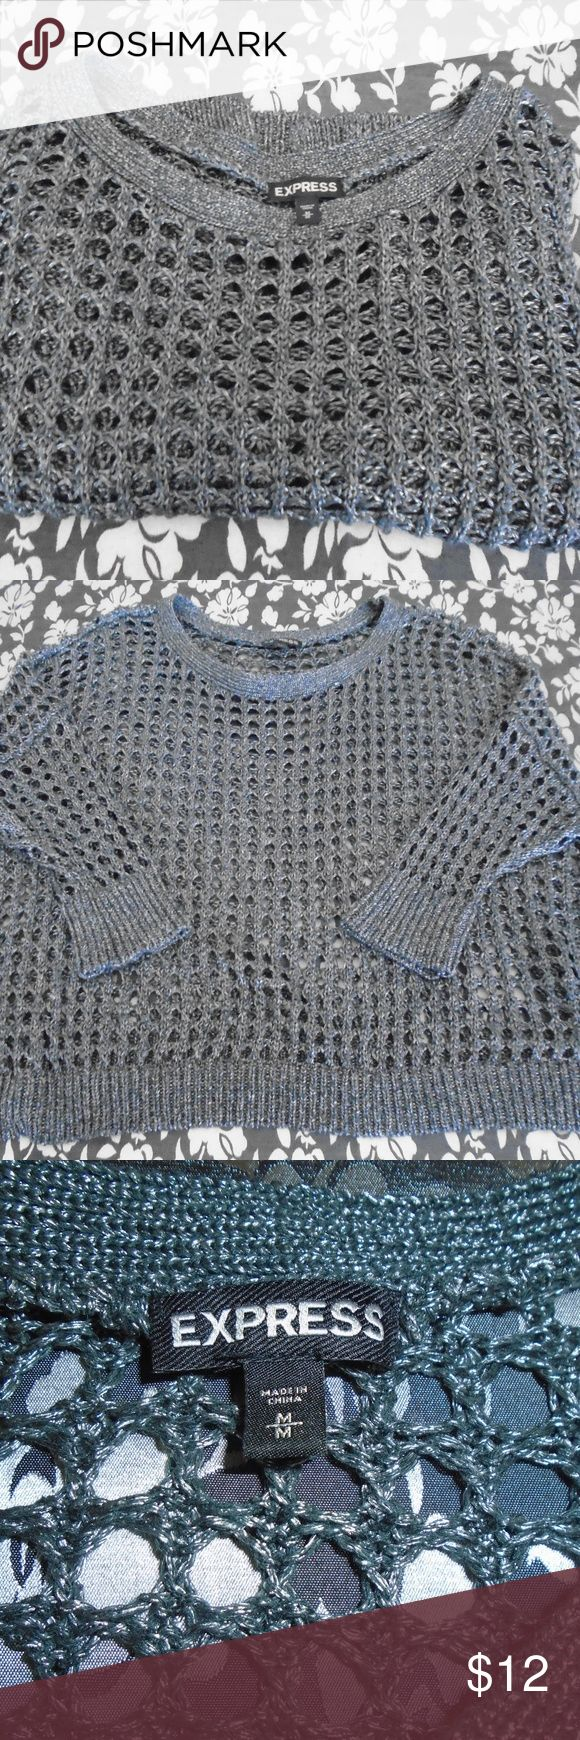 "Express Open Knit Cropped Top Grey/Silver Open Knit Top, Loose Fit, Dropped Batwing Sleeves Acrylic Nylon Blend Pit to Pit 22"" Back 17 1/2"" Sleeve 8' Gently Pre-owned No Rips Stains or Holes Express Tops Crop Tops"